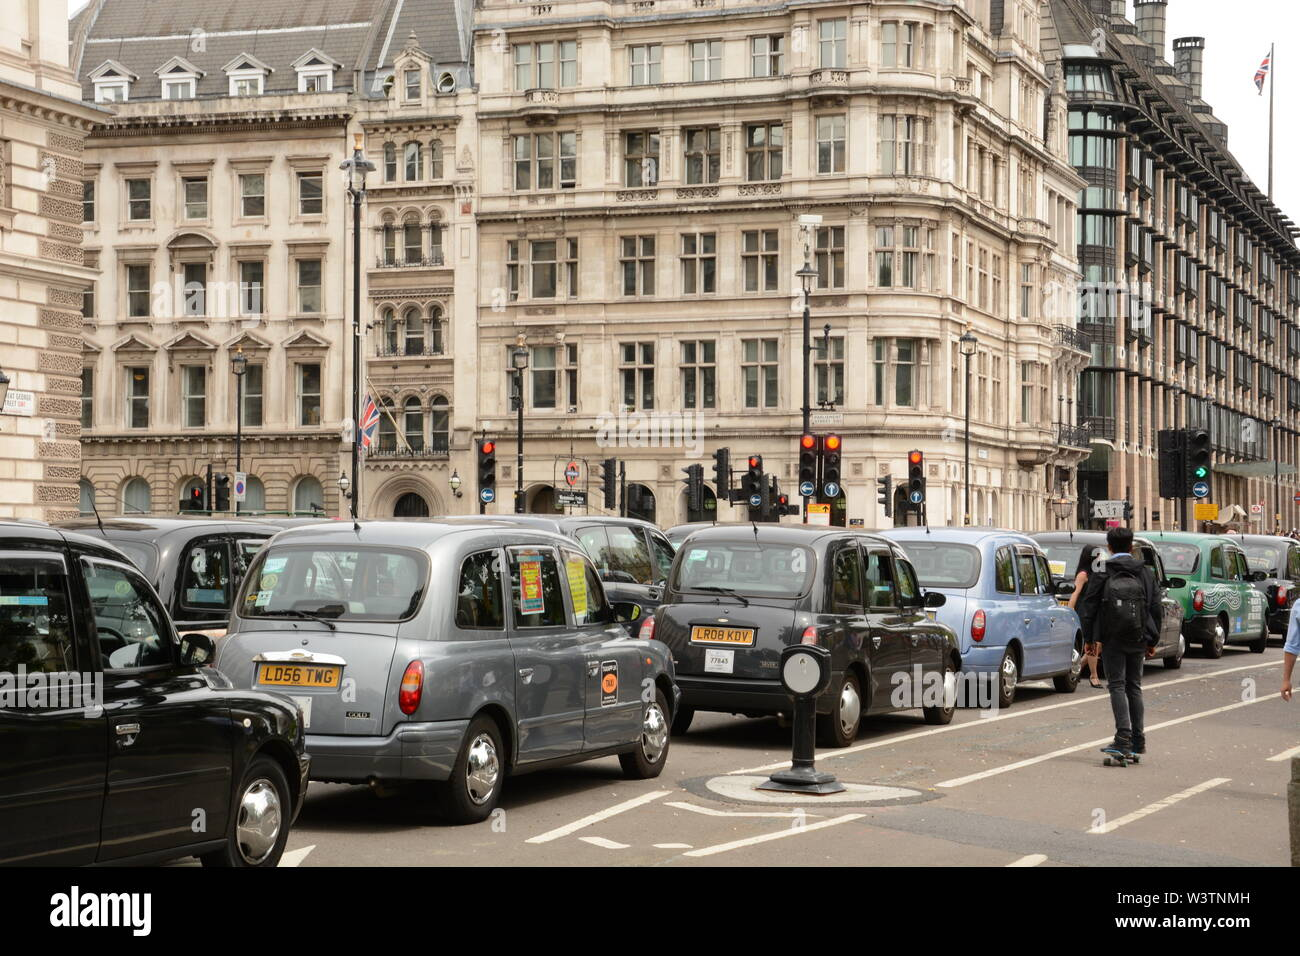 Black Cab Taxi Drivers demonstrate in central London 17th July 2019. Stock Photo